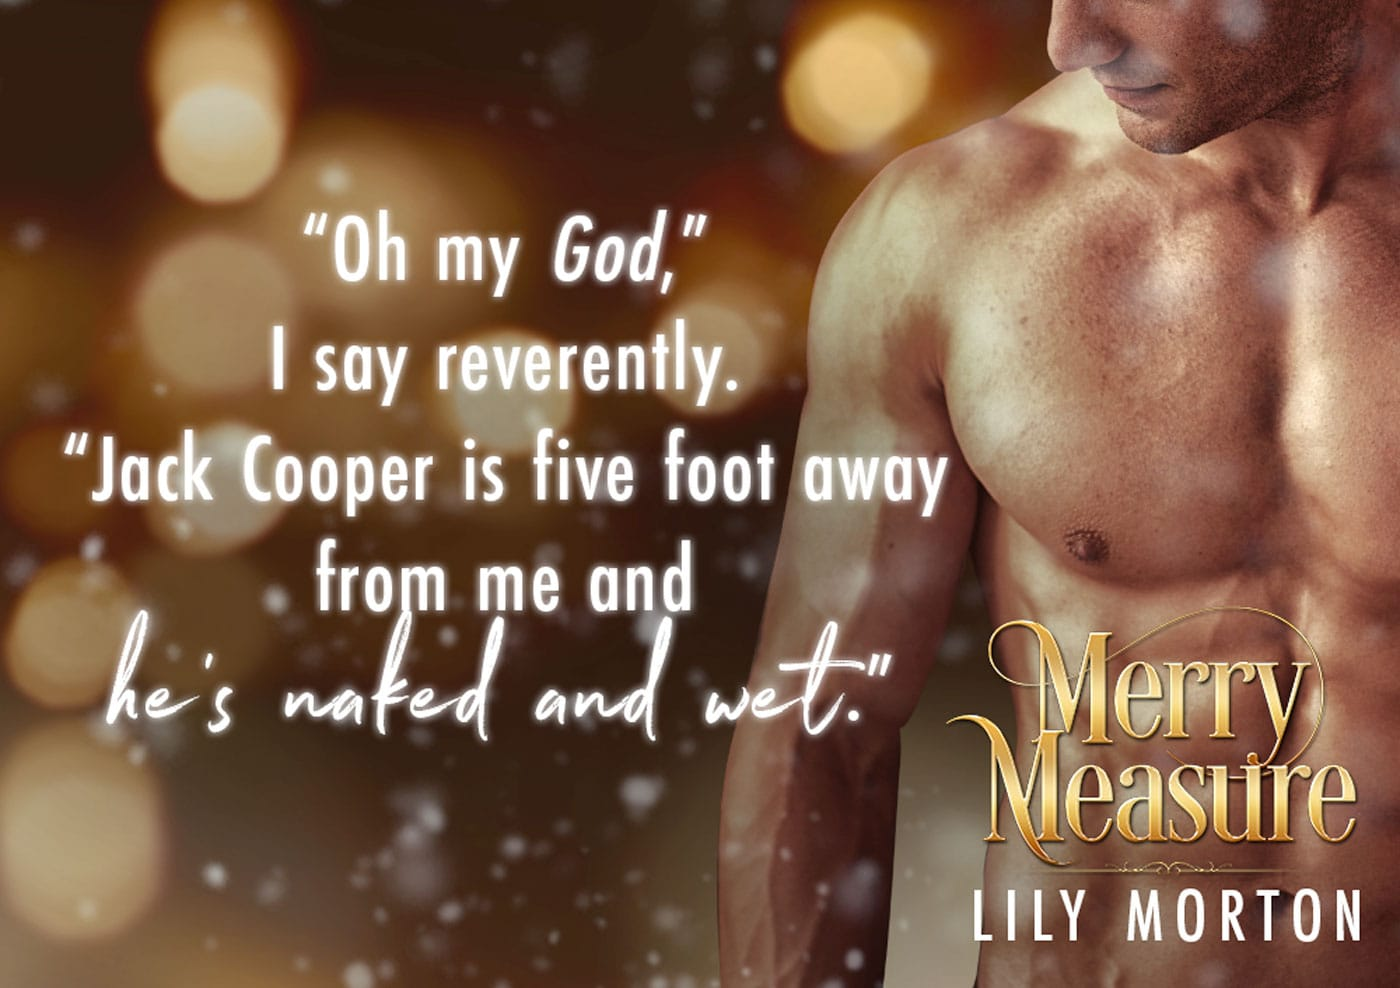 Merry Measure By Lily Morton Teaser # 2